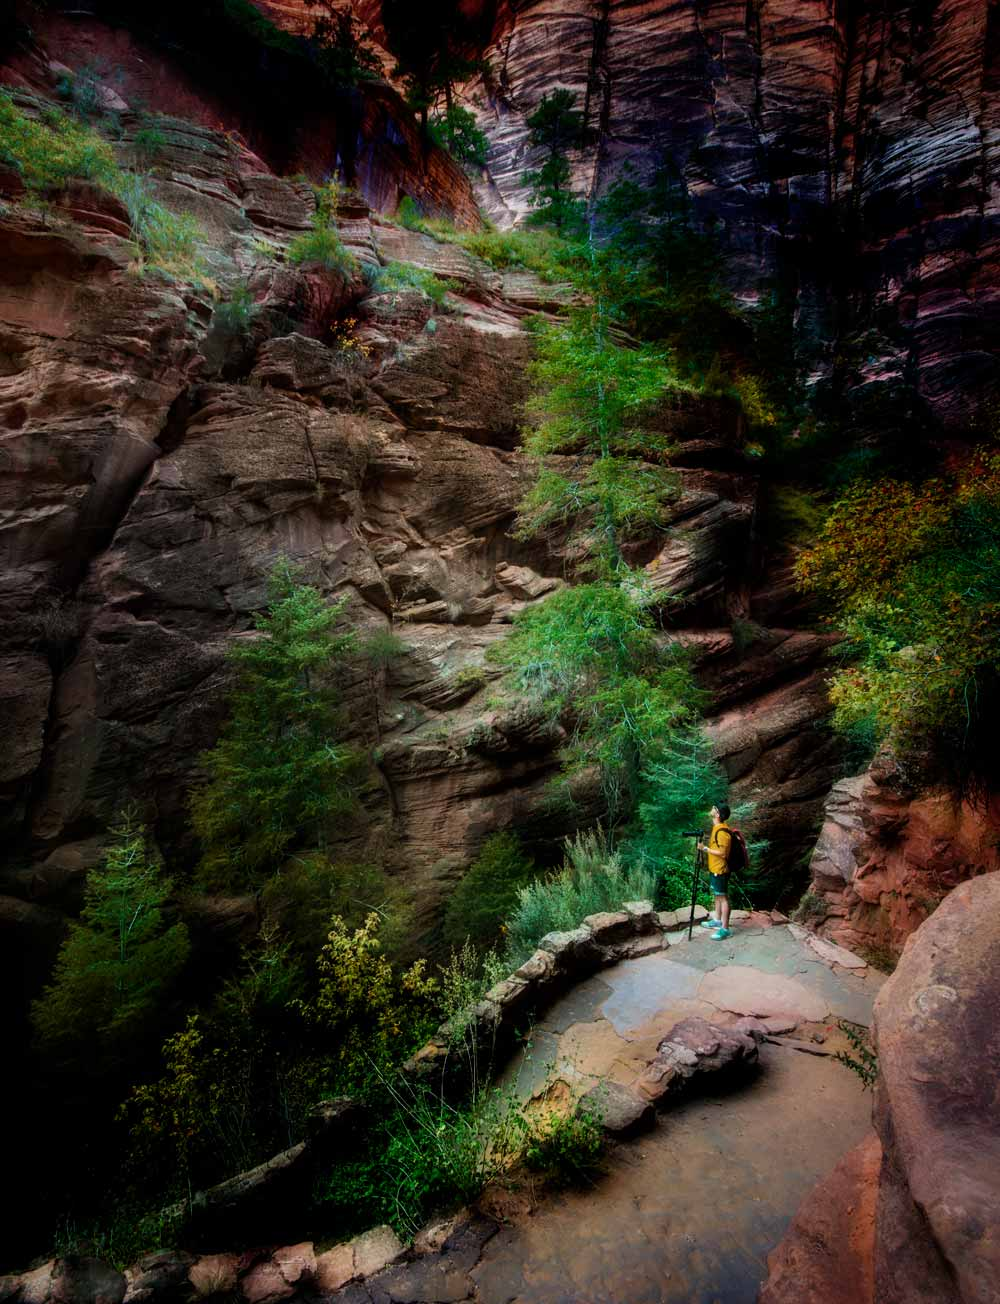 how to use photoshop for landscape images, how to change color in photoshop